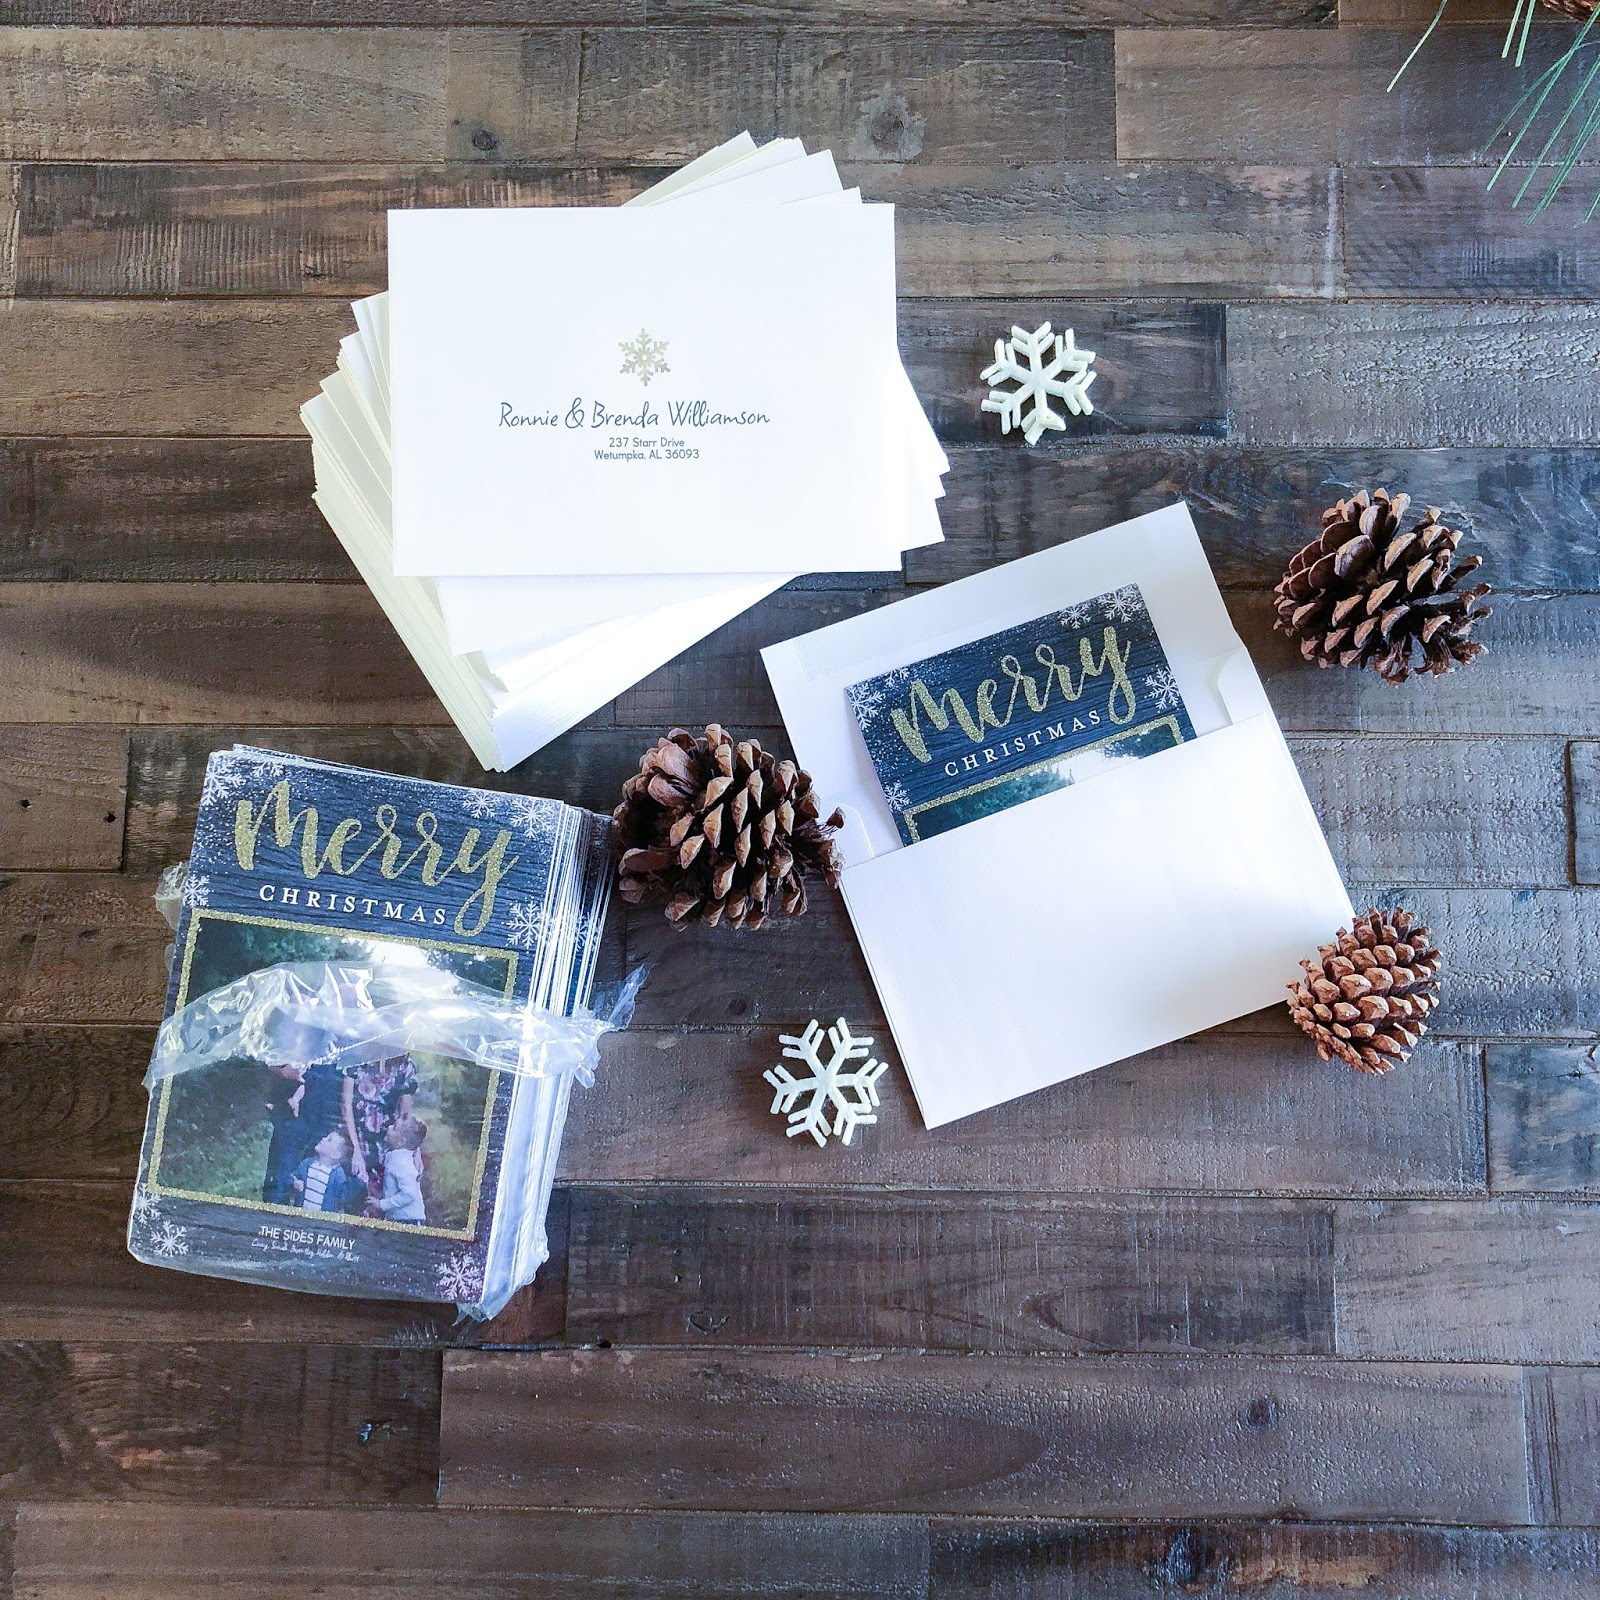 If Youu0027re Still In The Market For Christmas Cards, Good News! Shutterfly Is  Offering 50% Off Premium Holiday Cards With The Code ENCORE.